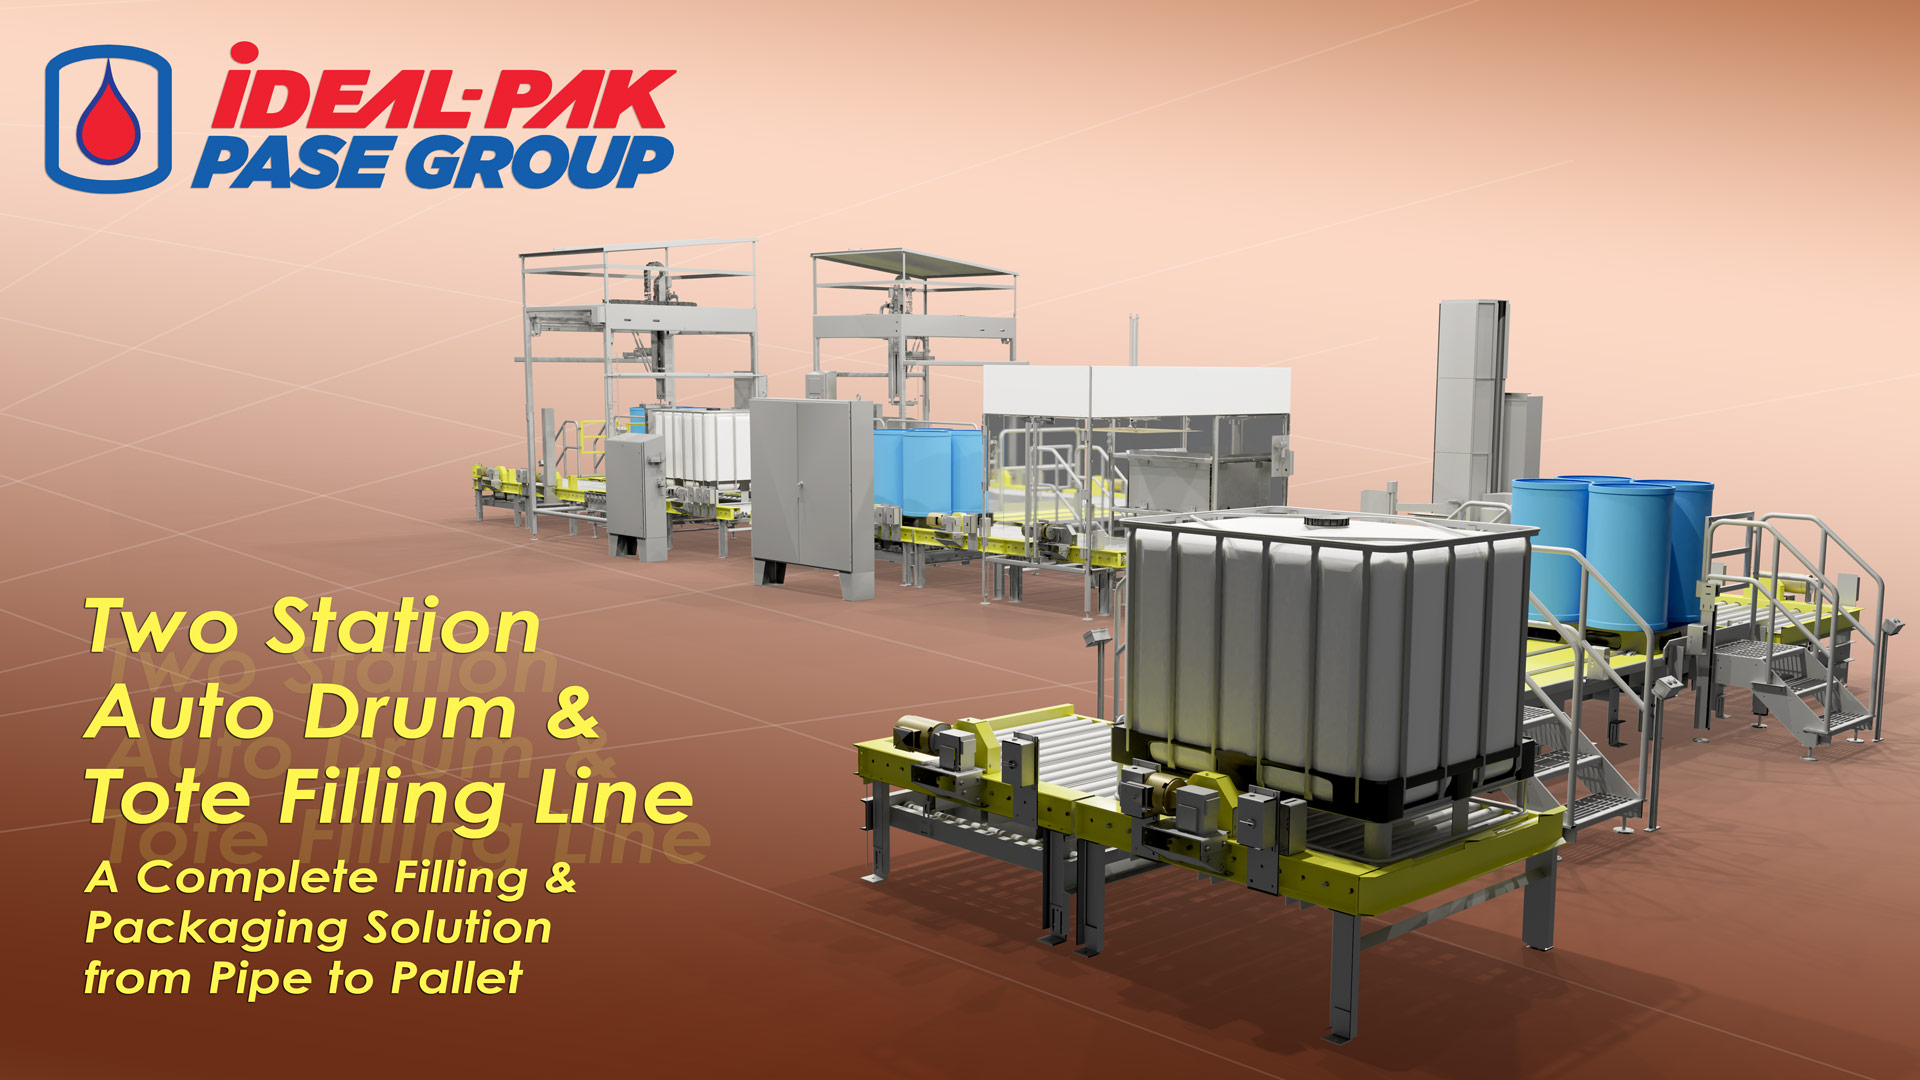 Complete integrated filling line for Drum & Totes.